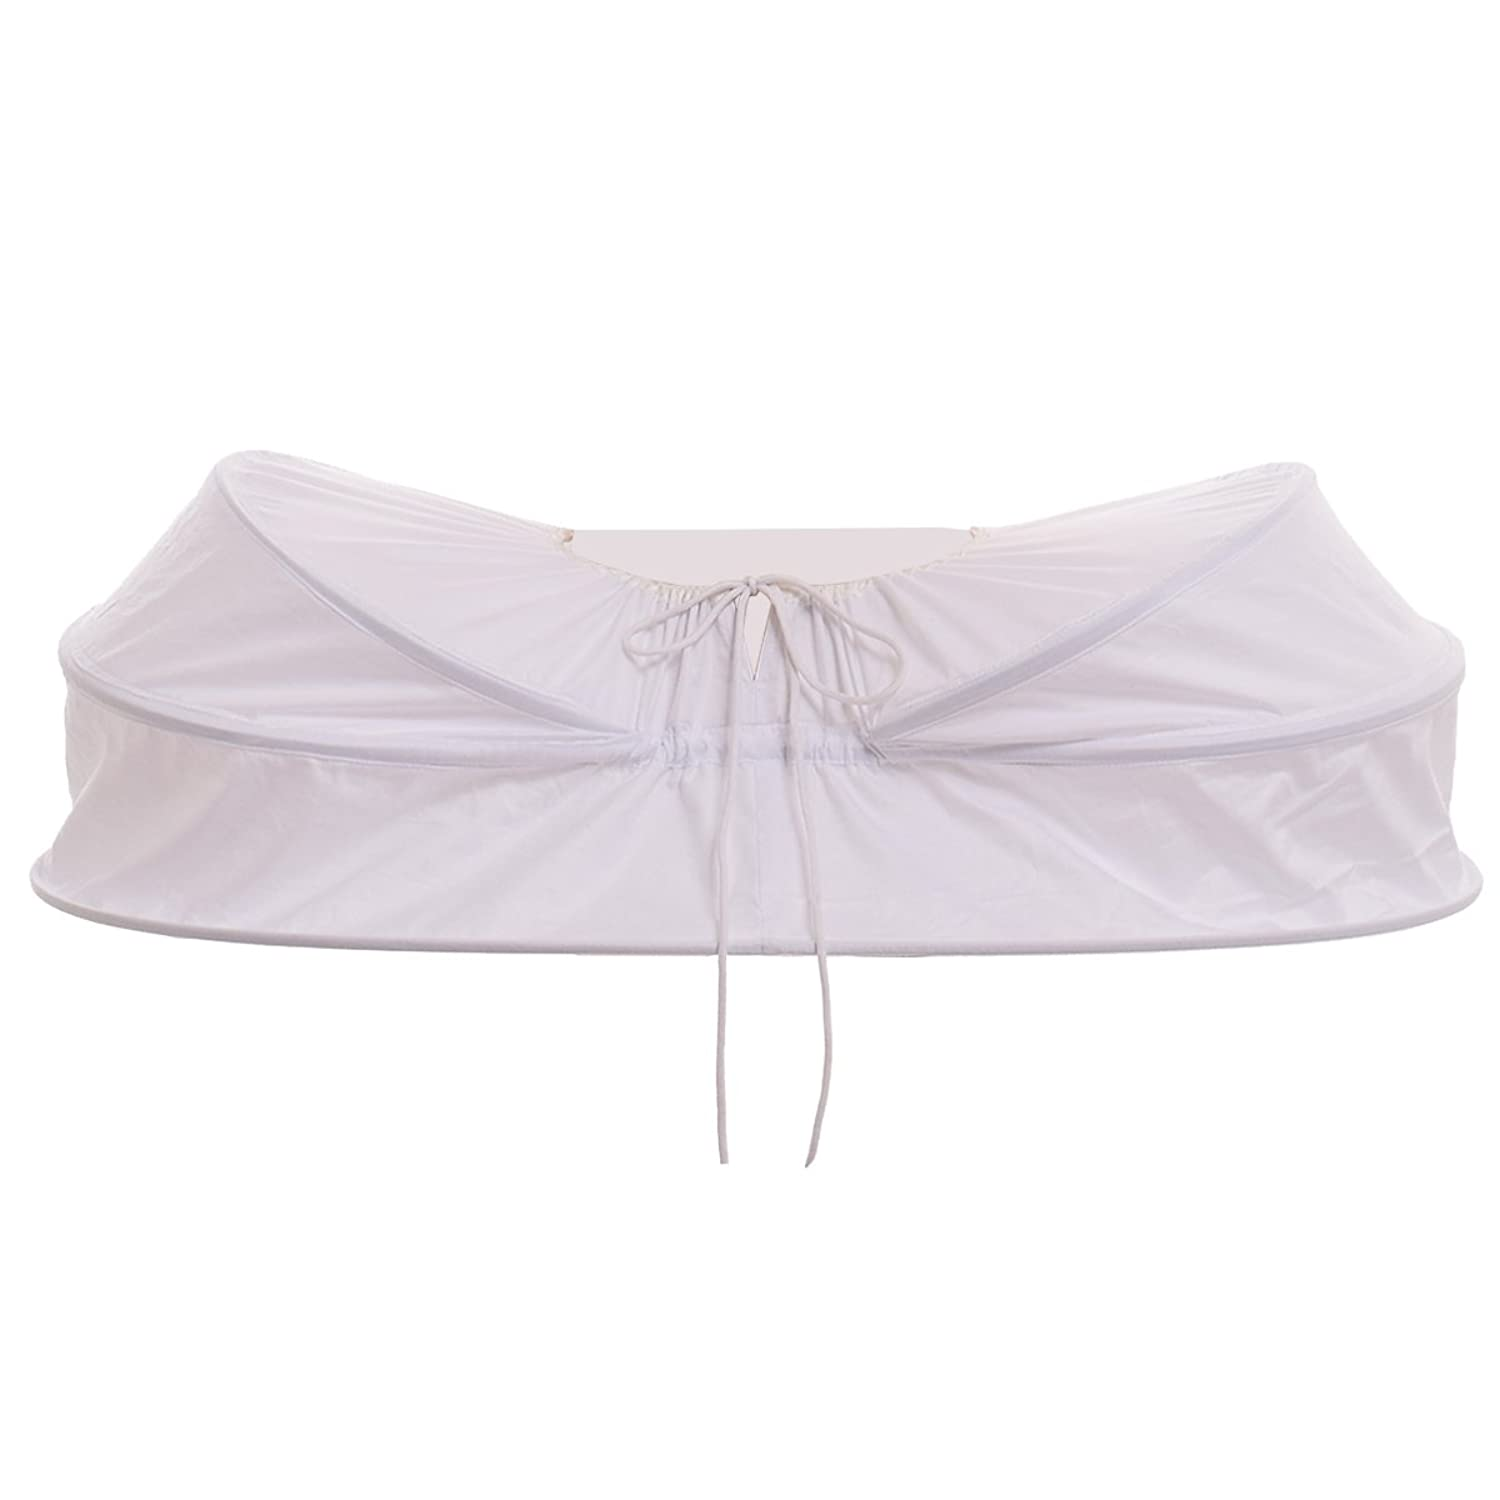 Replicated French Rococo Marie Antoinette Elizabethan Pannier Undergarment - DeluxeAdultCostumes.com